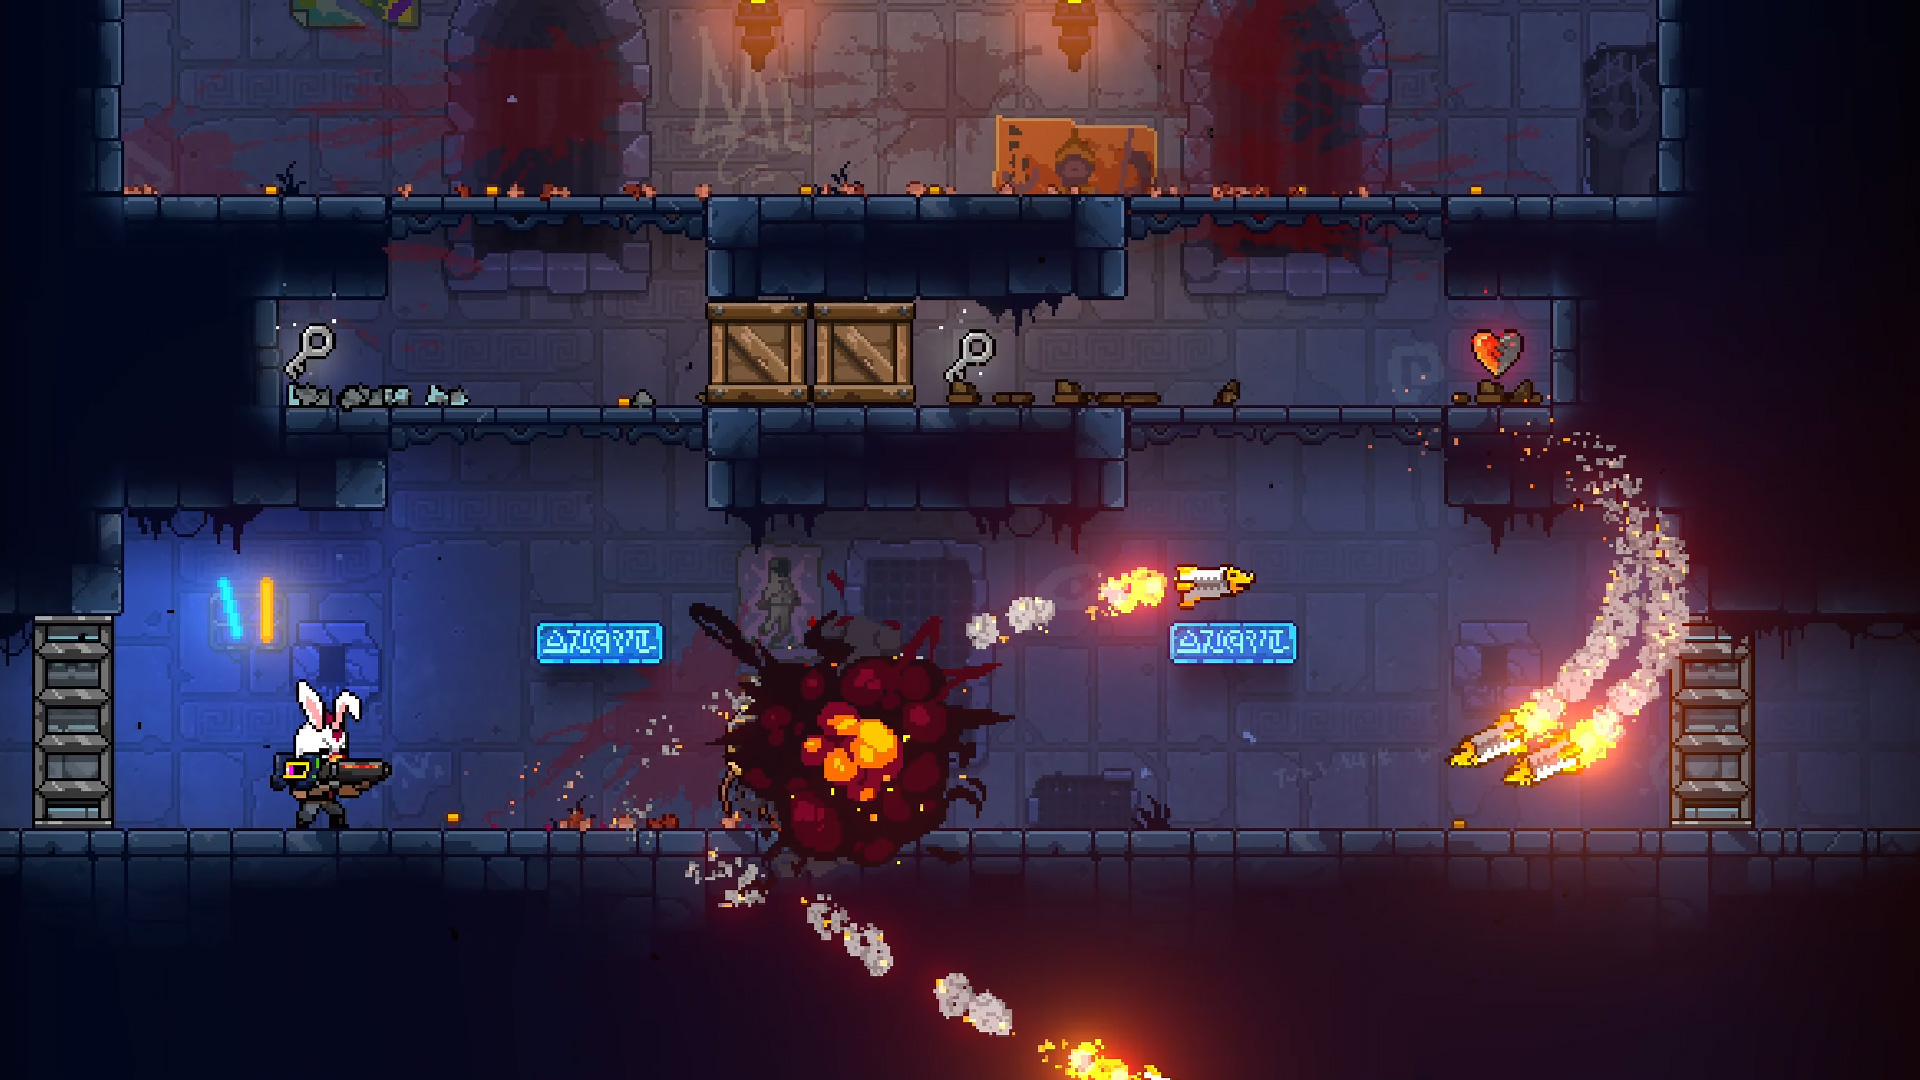 Neon Abyss brings frenetic rogue-like fun to dungeon crawling